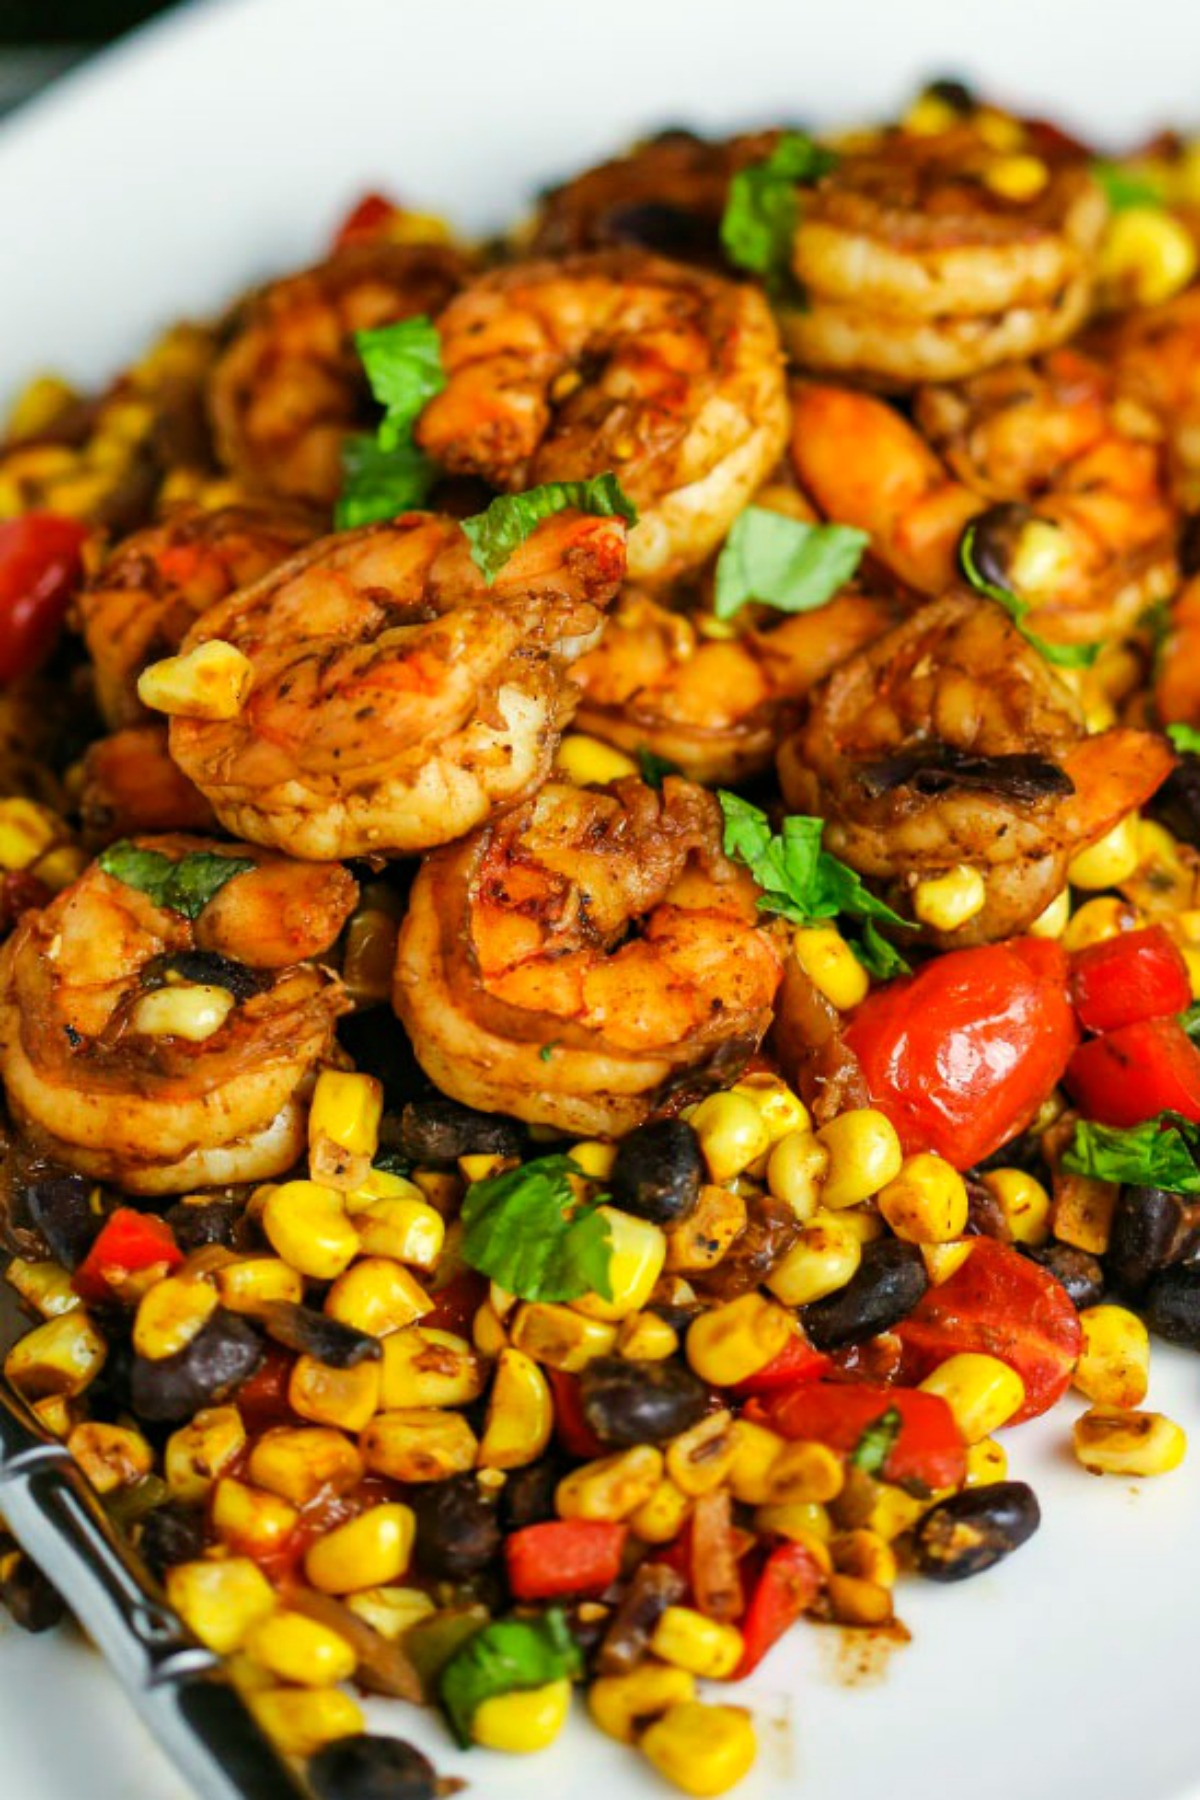 Southwest Shrimp Succotash - The Weary Chef